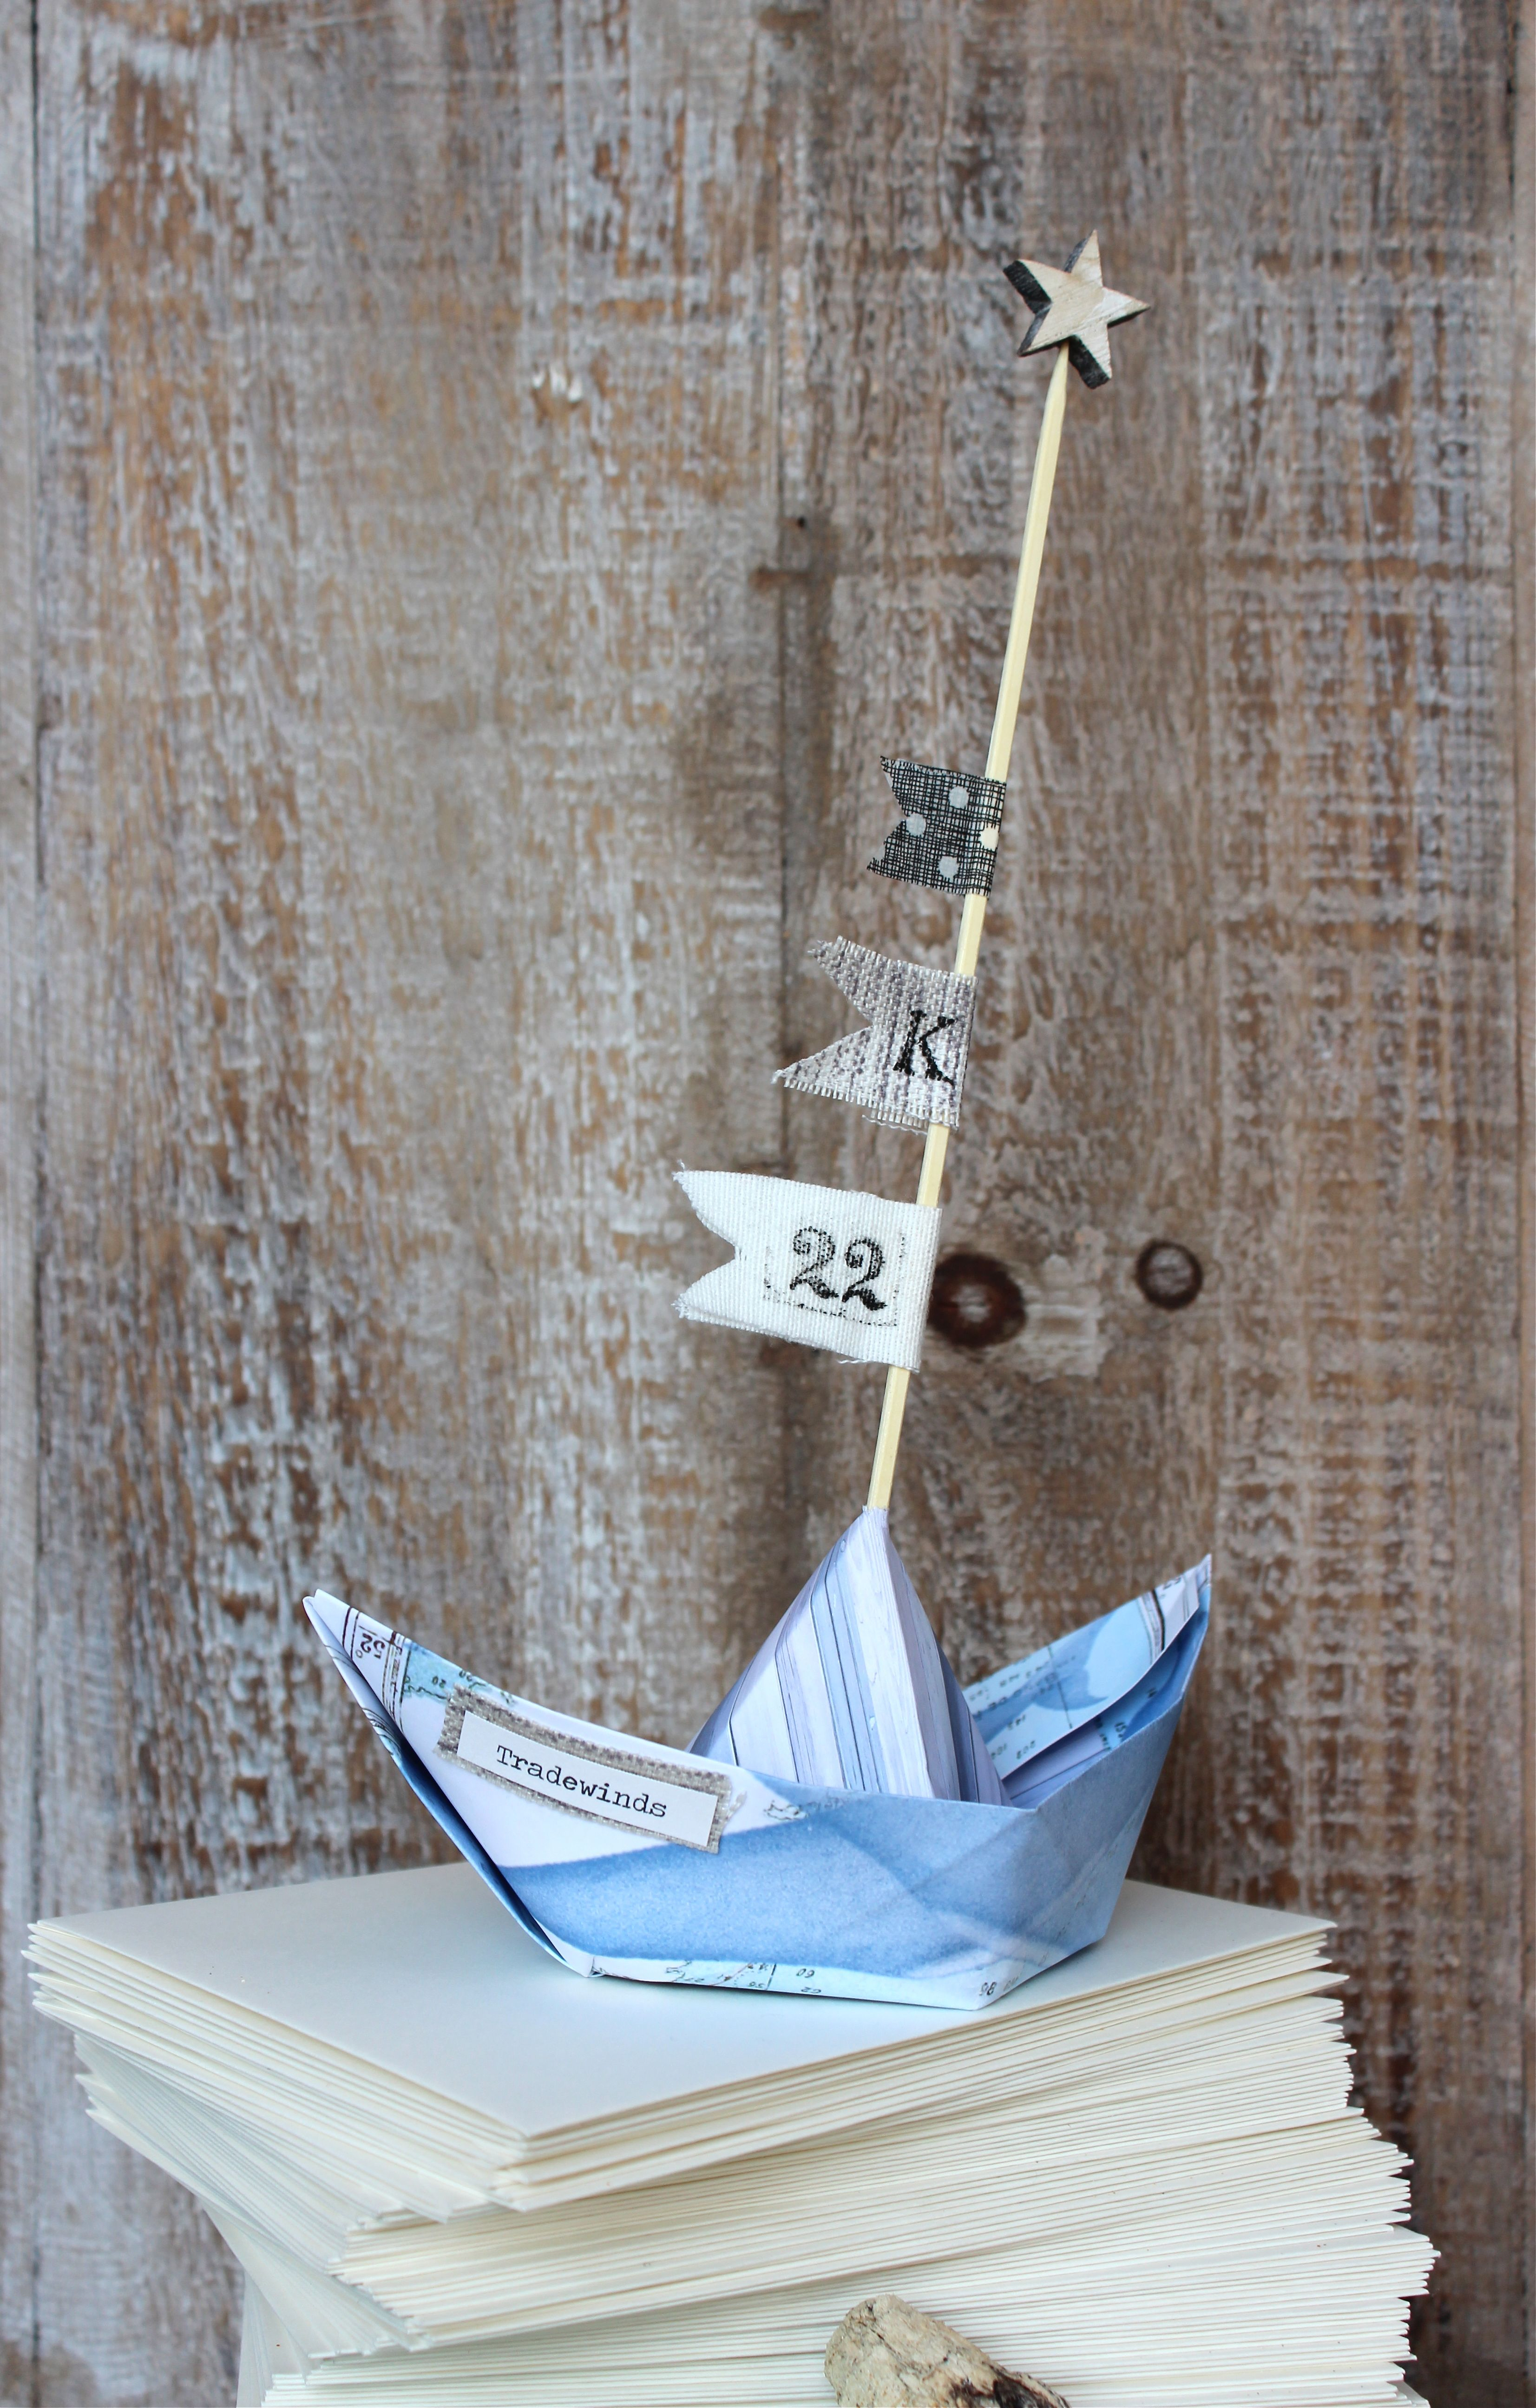 tradewinds paper boat with mast and ribbon flags